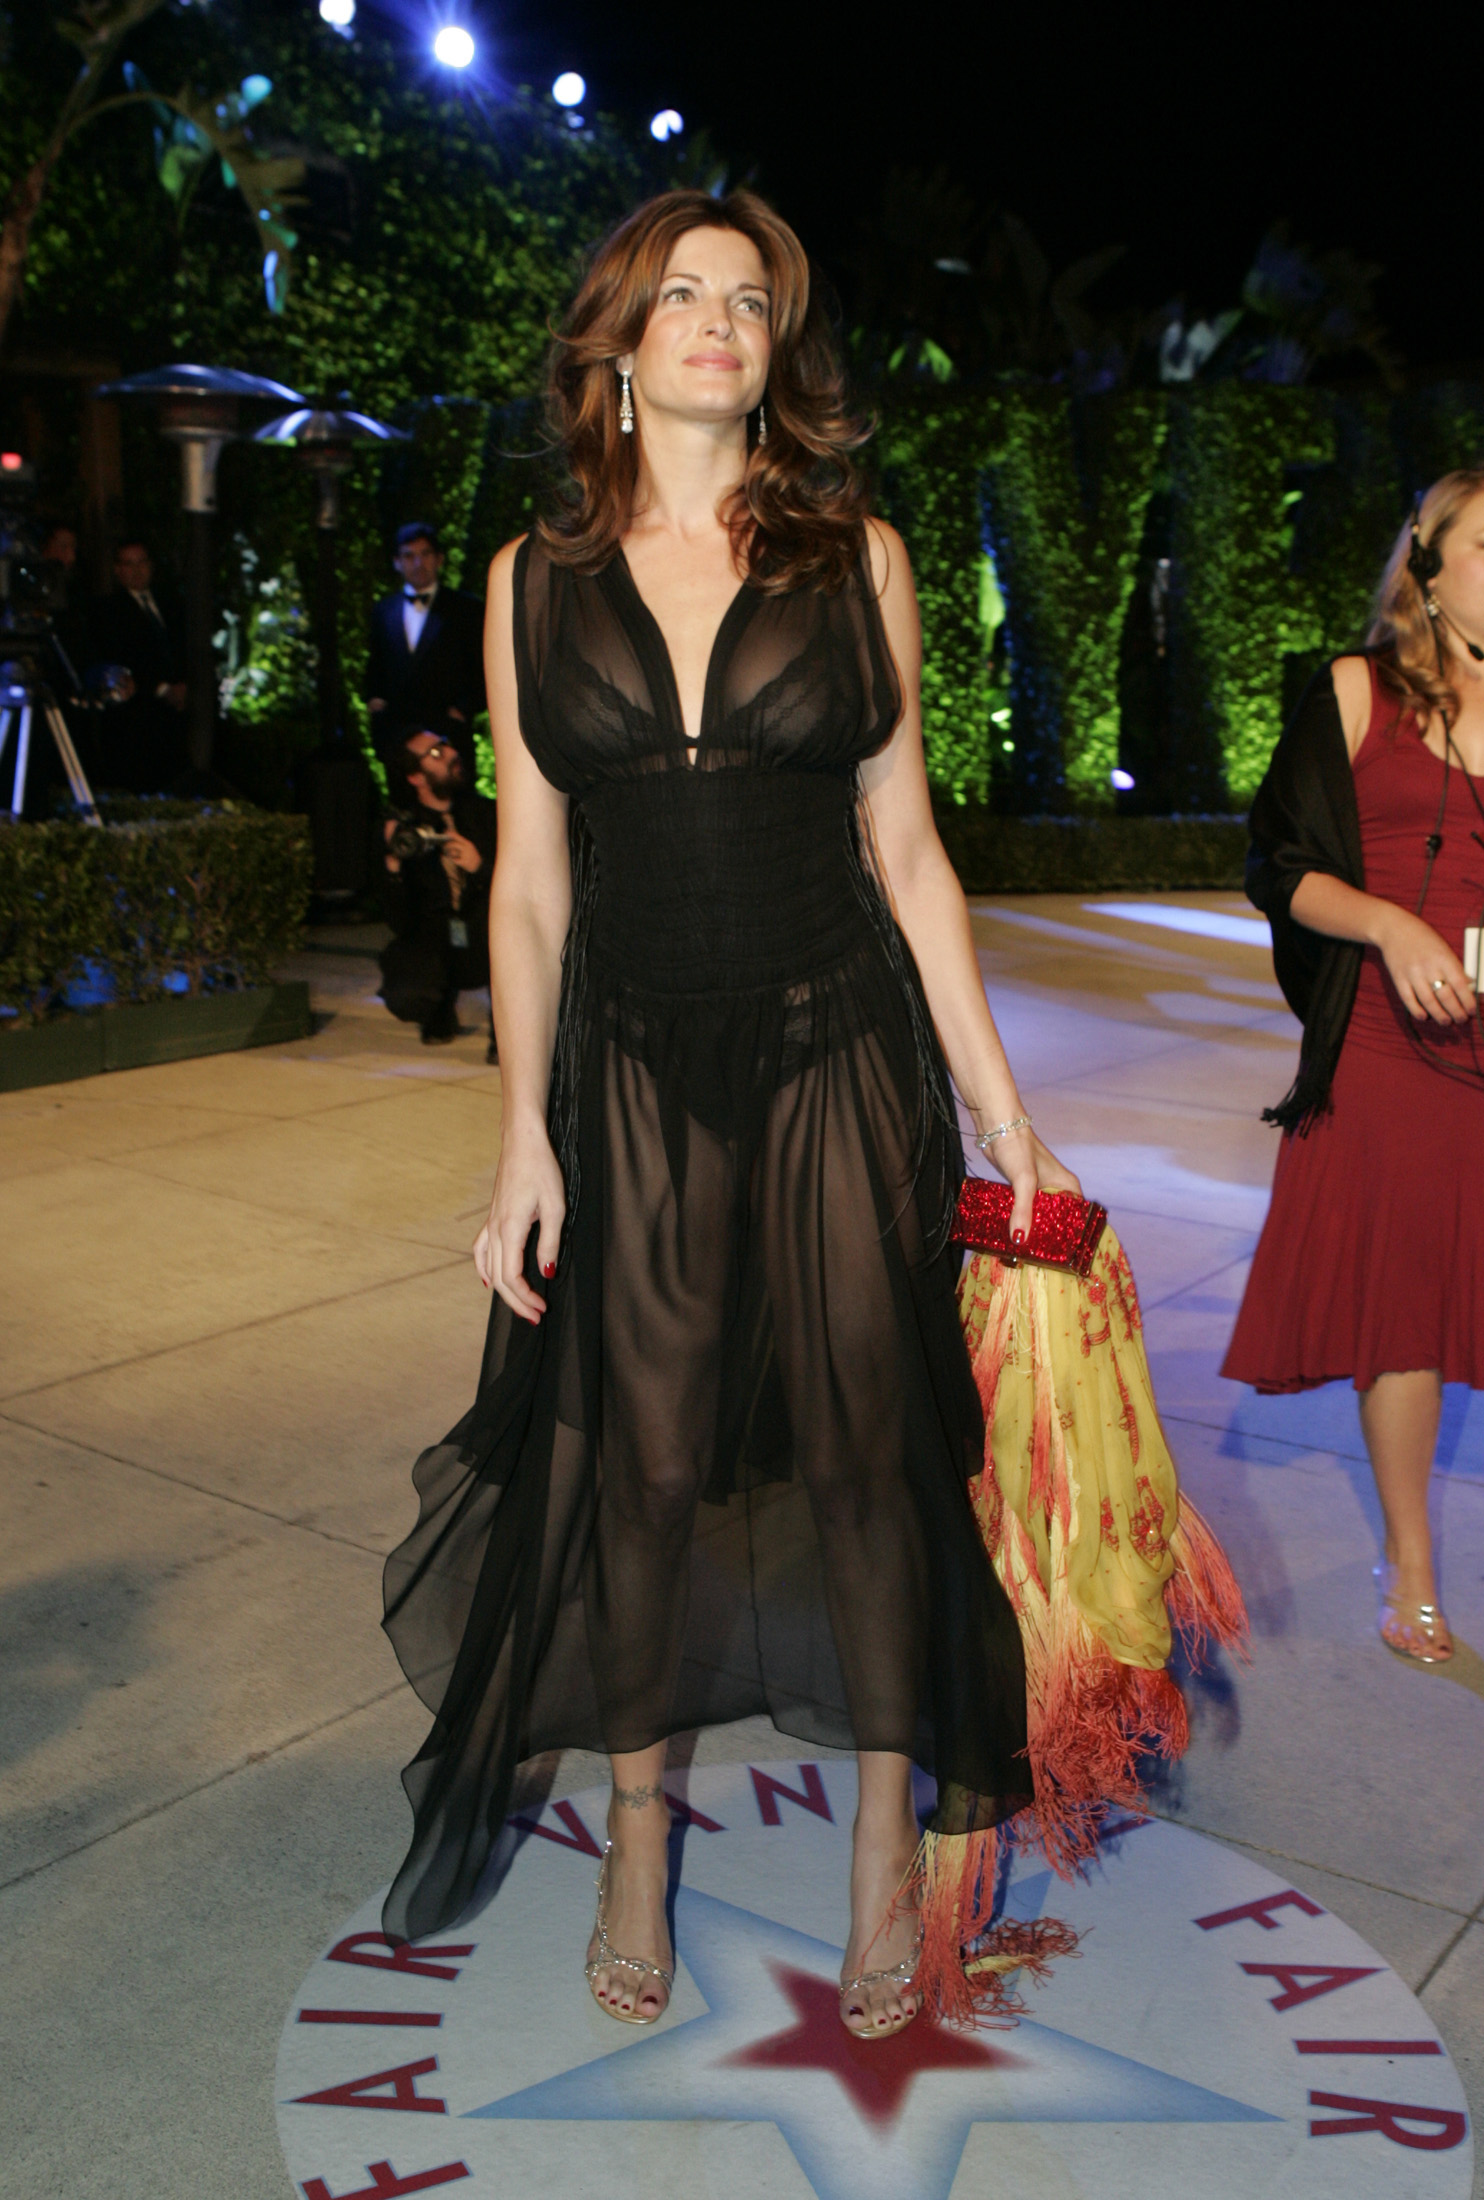 Cant Believe She Is 49 Fans In Awe Of Stephanie Seymour -1395